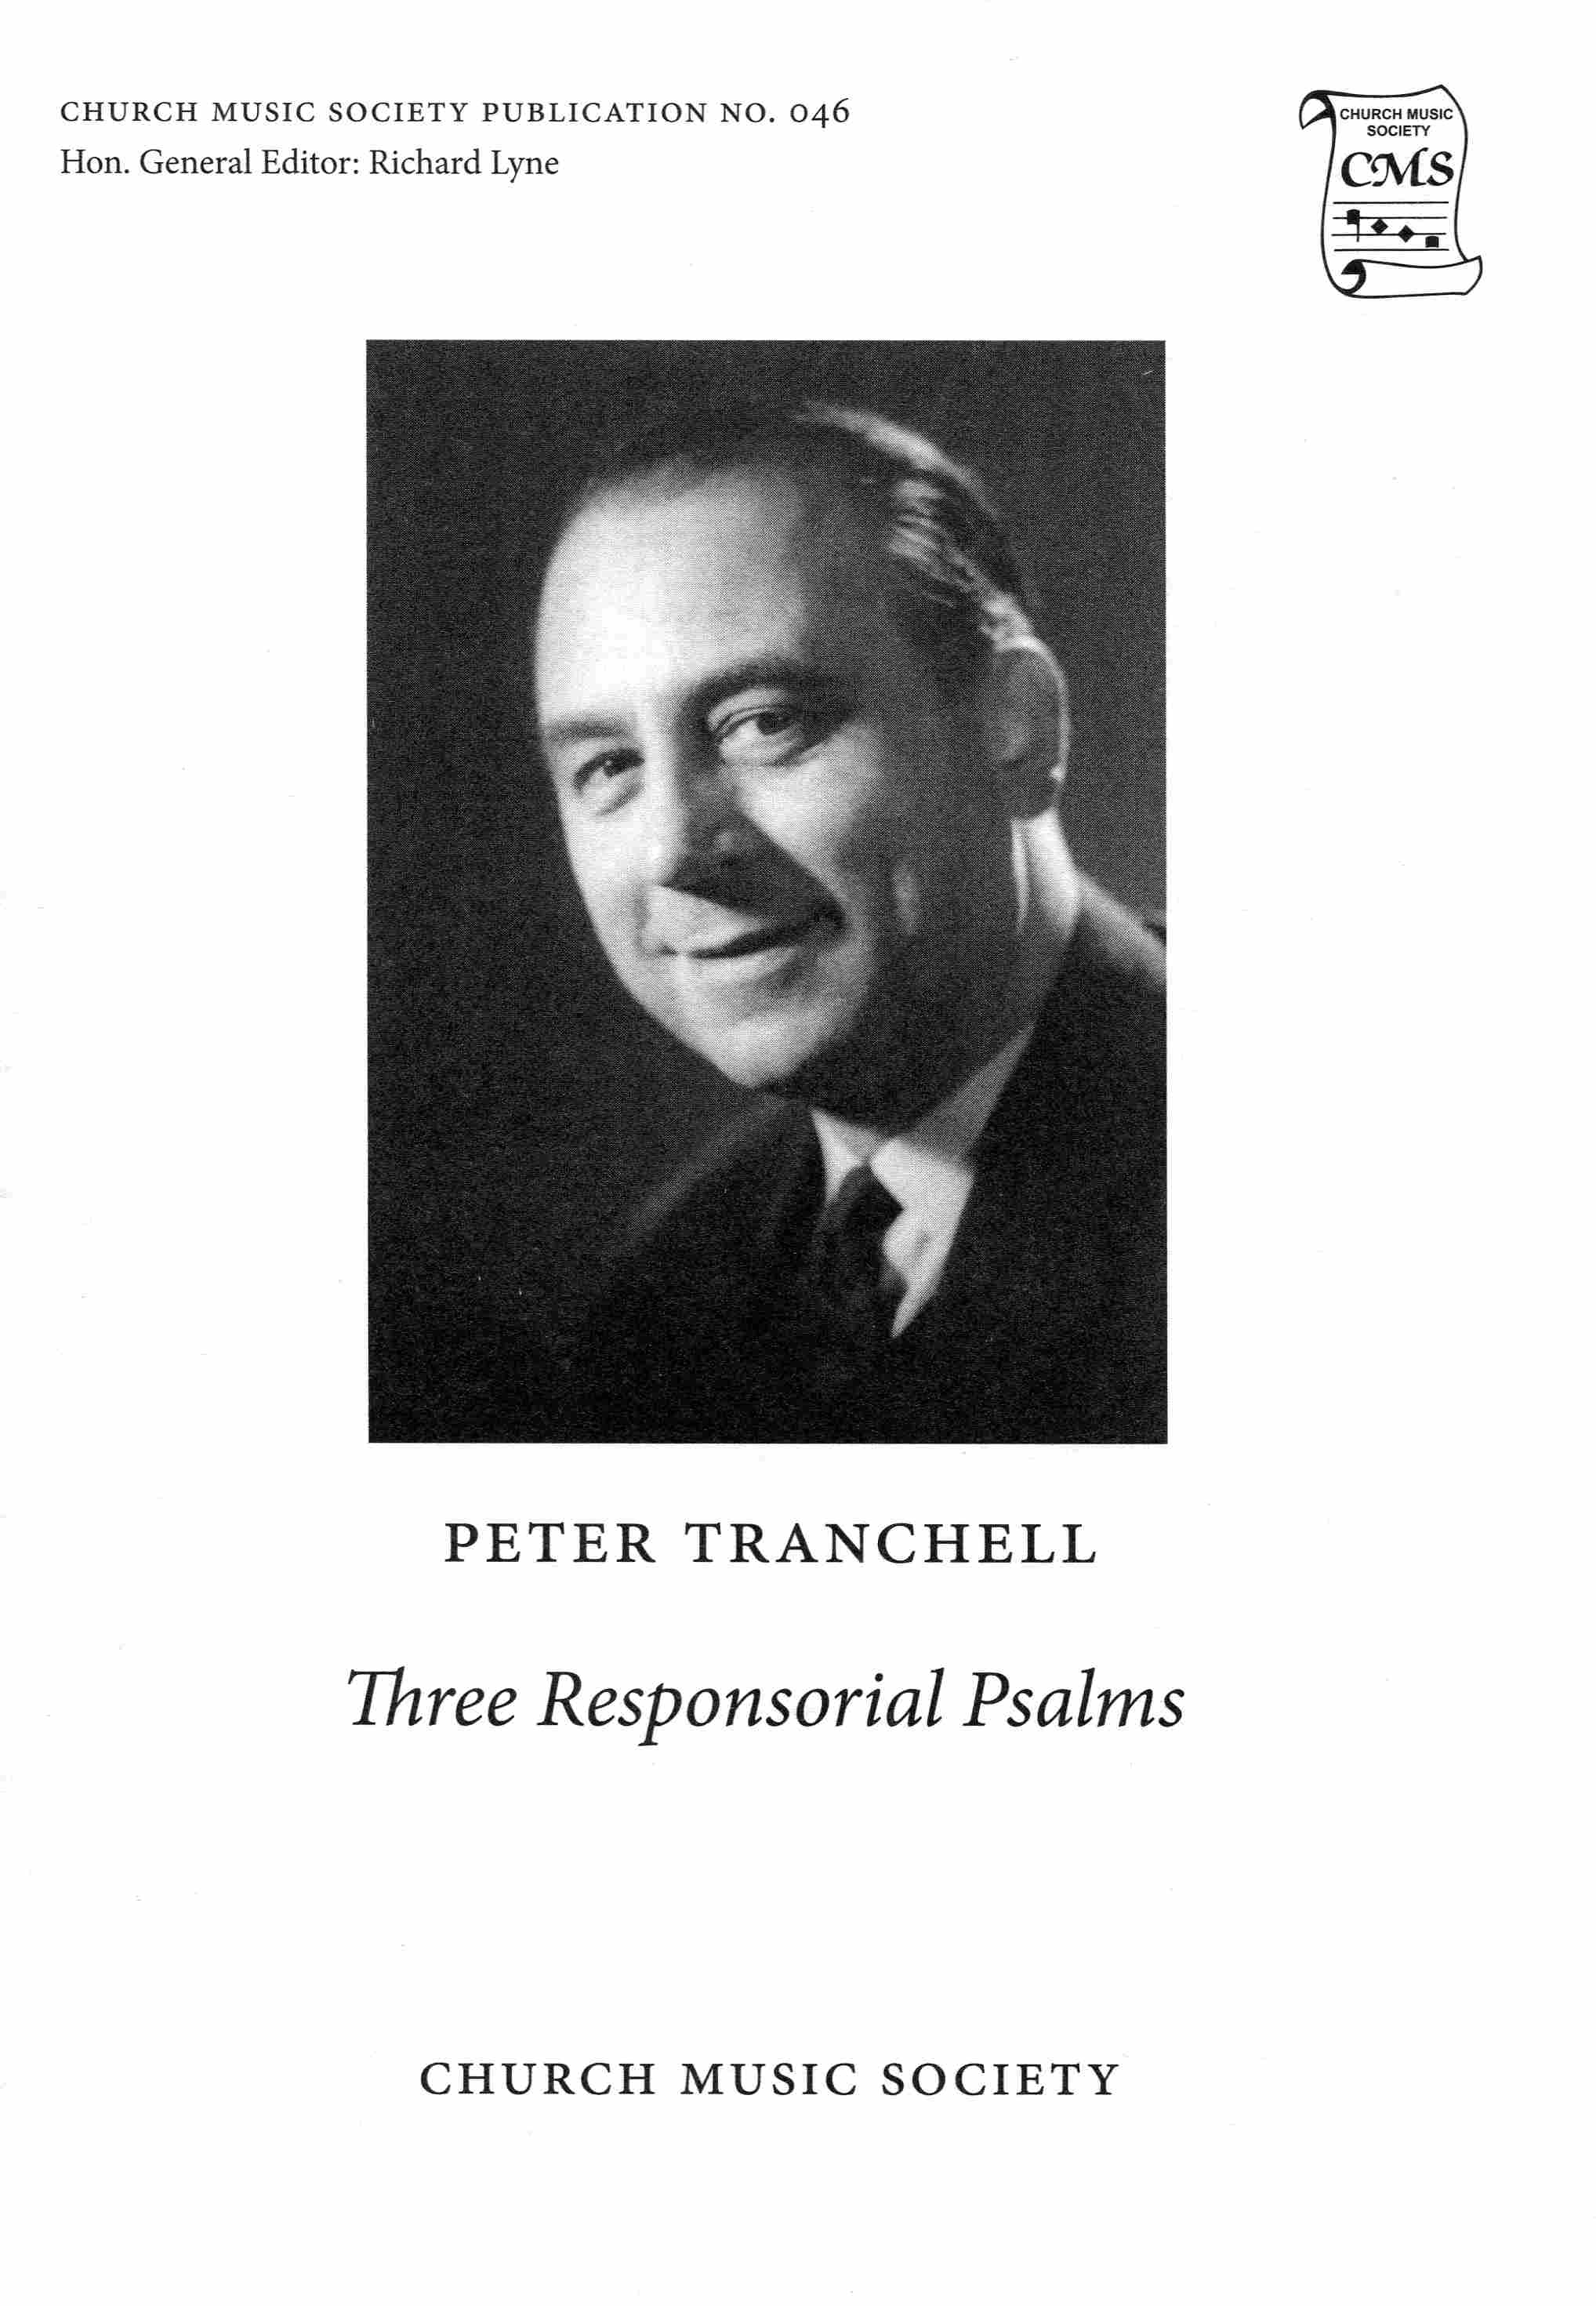 Peter Tranchell Three Responsorial Psalms CMS046